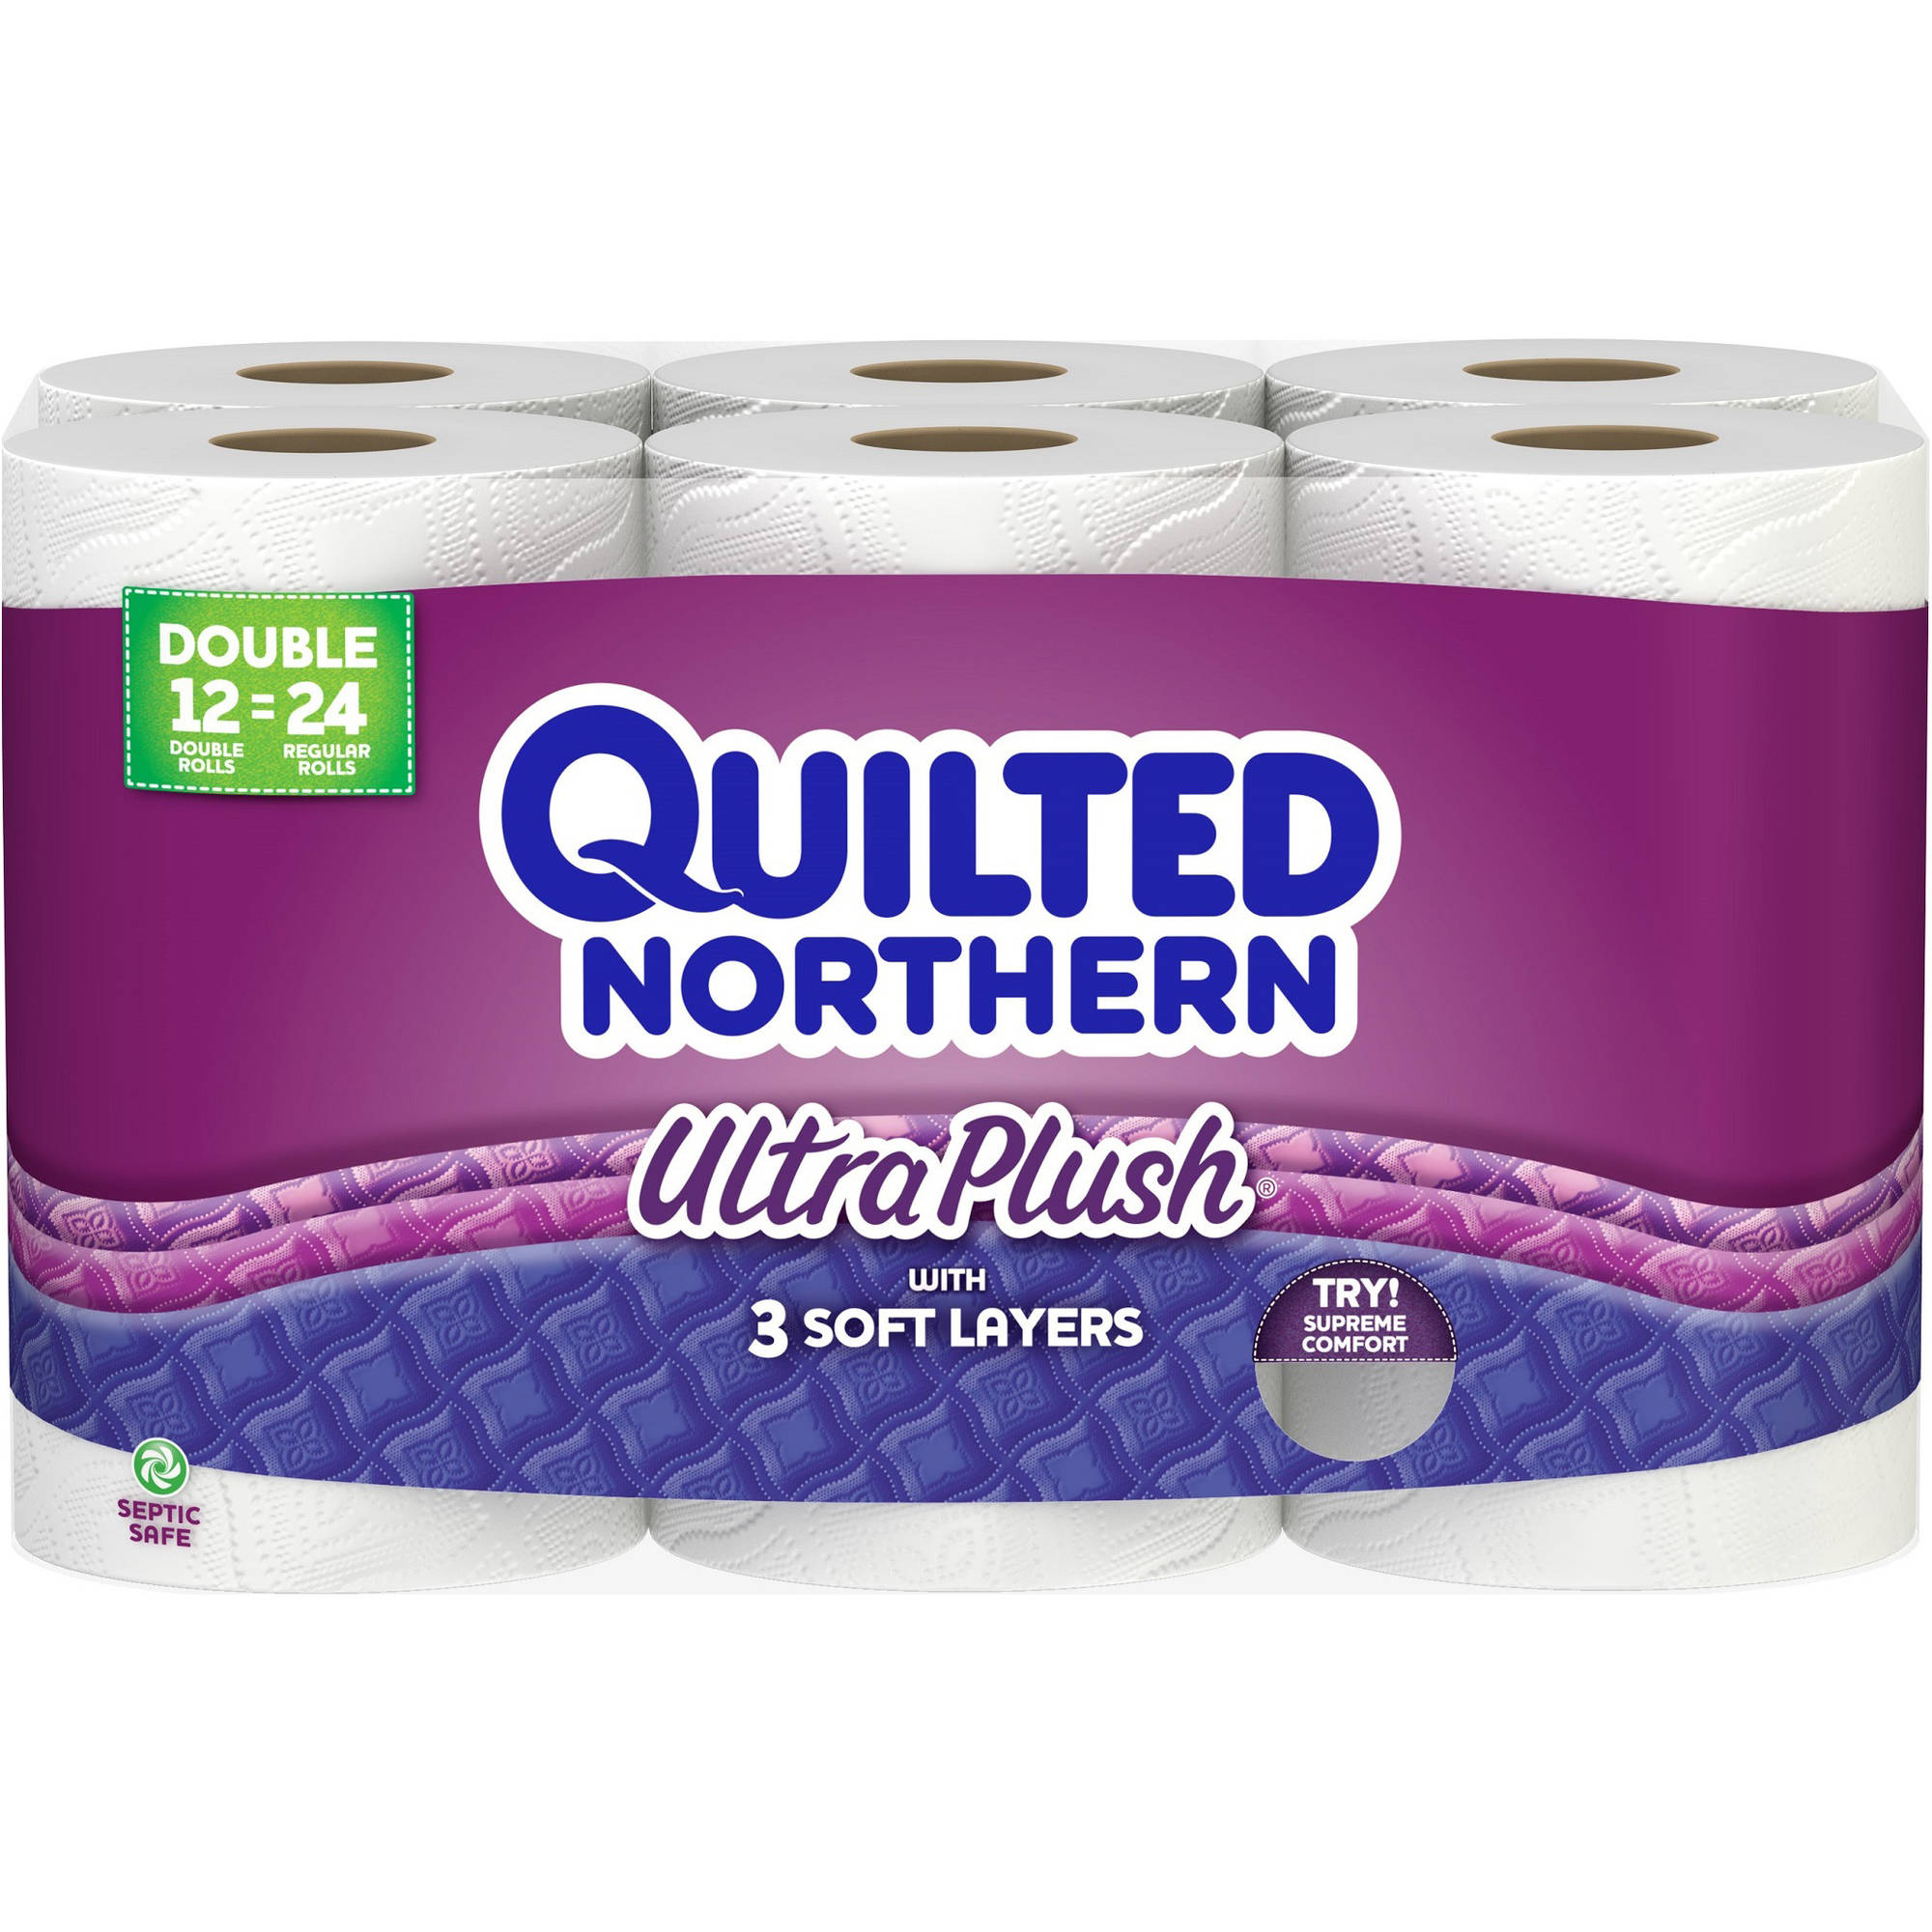 Quilted Northern Ultra Plush Double Roll Toilet Paper, 12 rolls